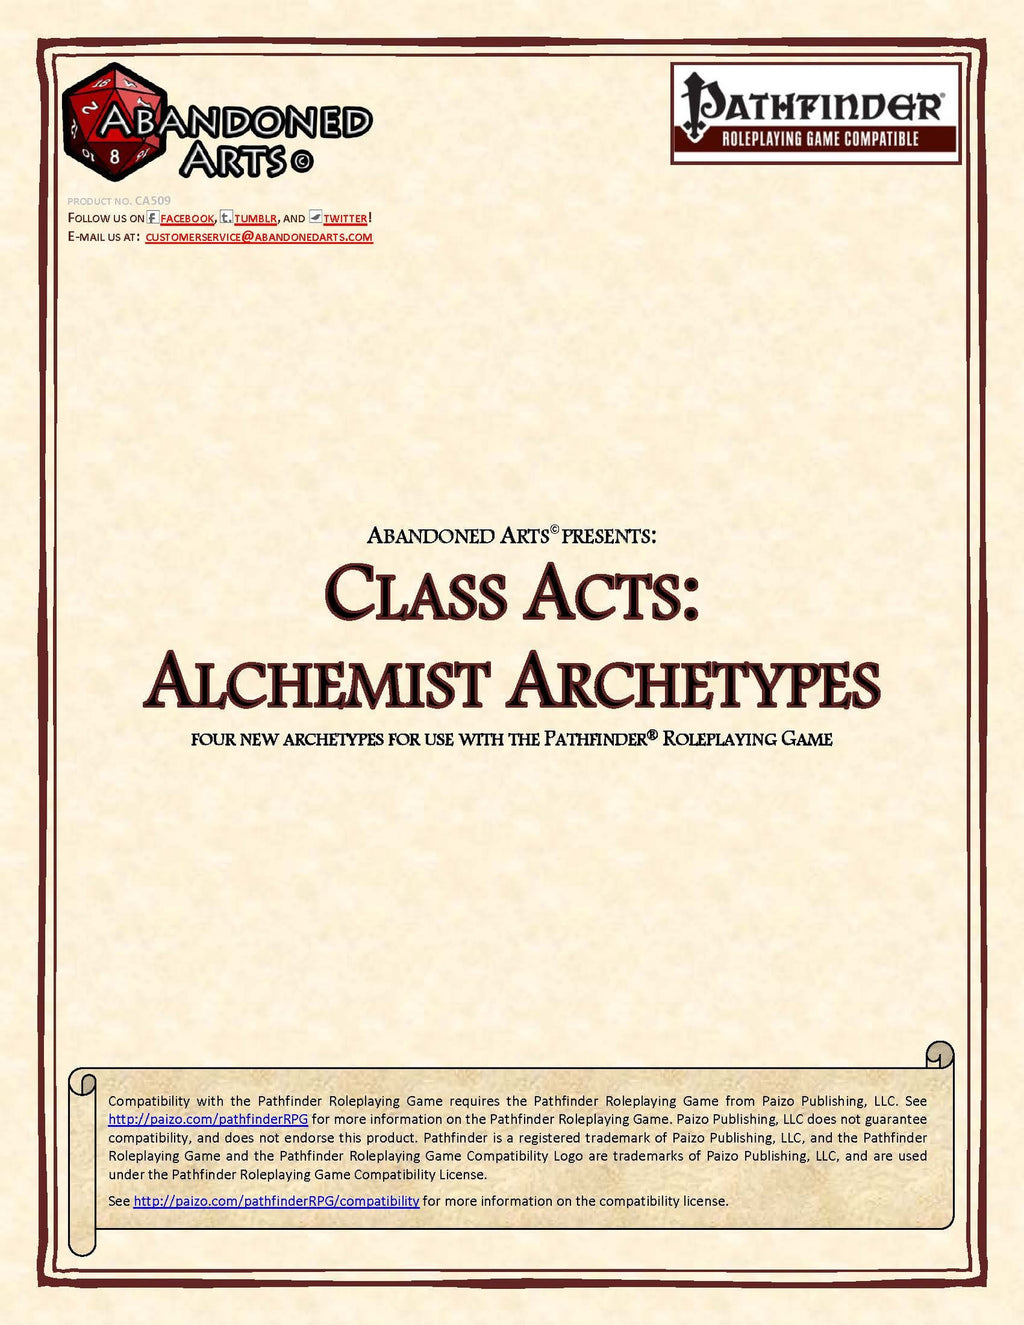 Class Acts: Alchemist Archetypes